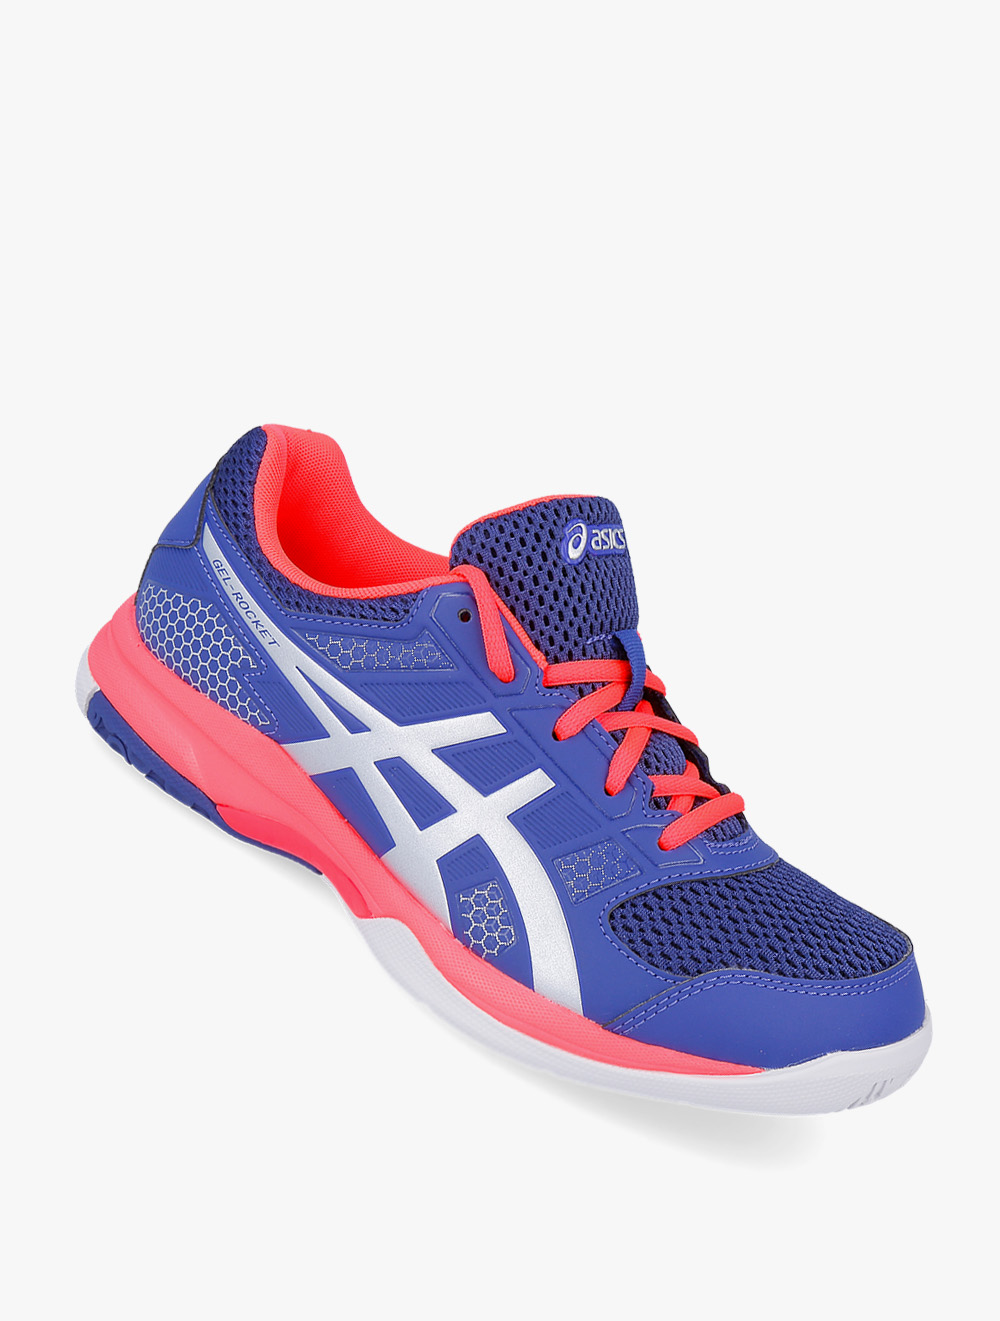 Women's On Shop Planet Shoes From Asics Sports qCSFCdx